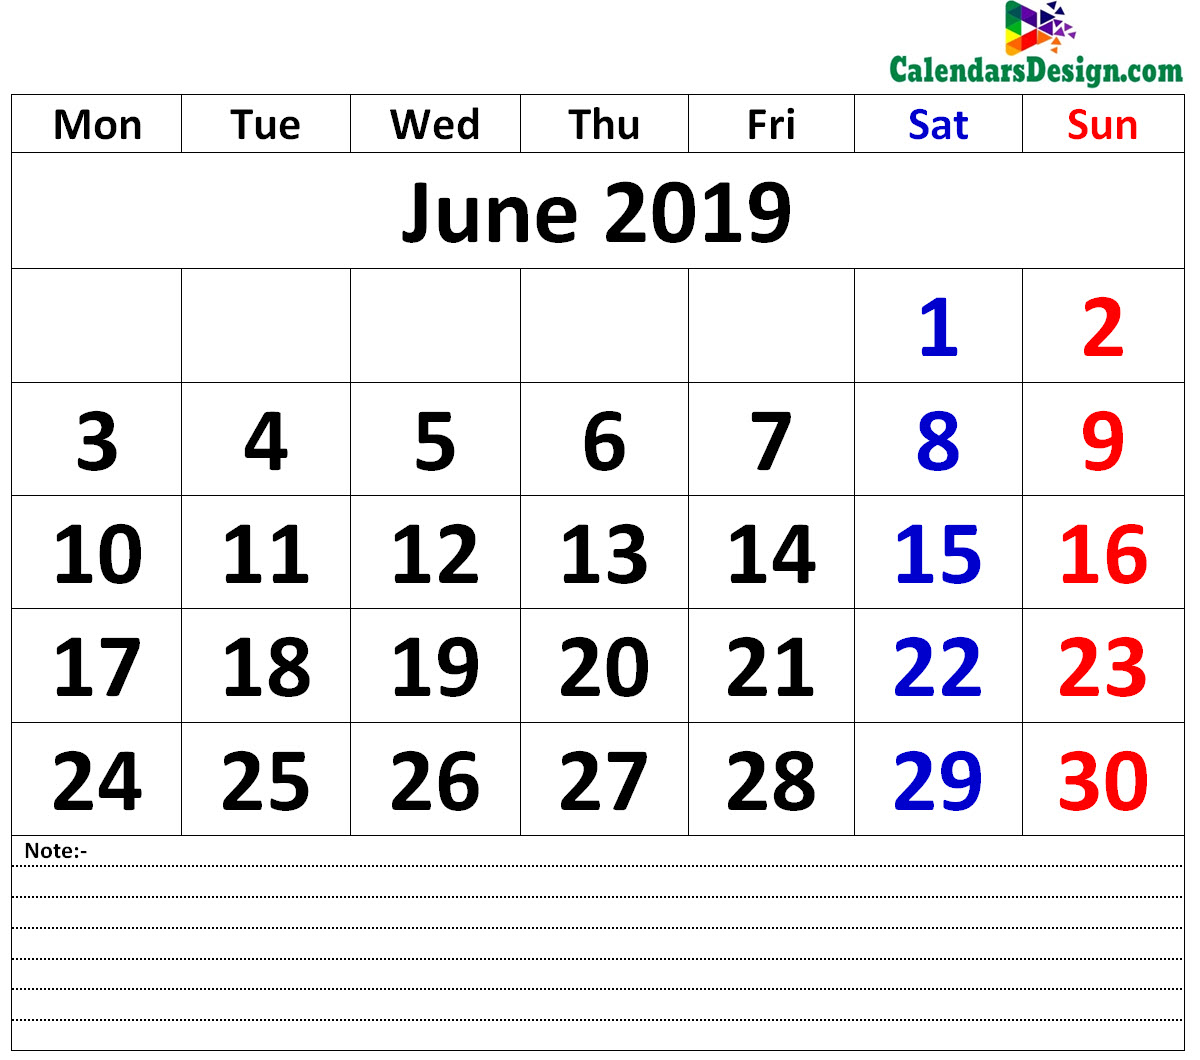 Printable Calendar for June 2019